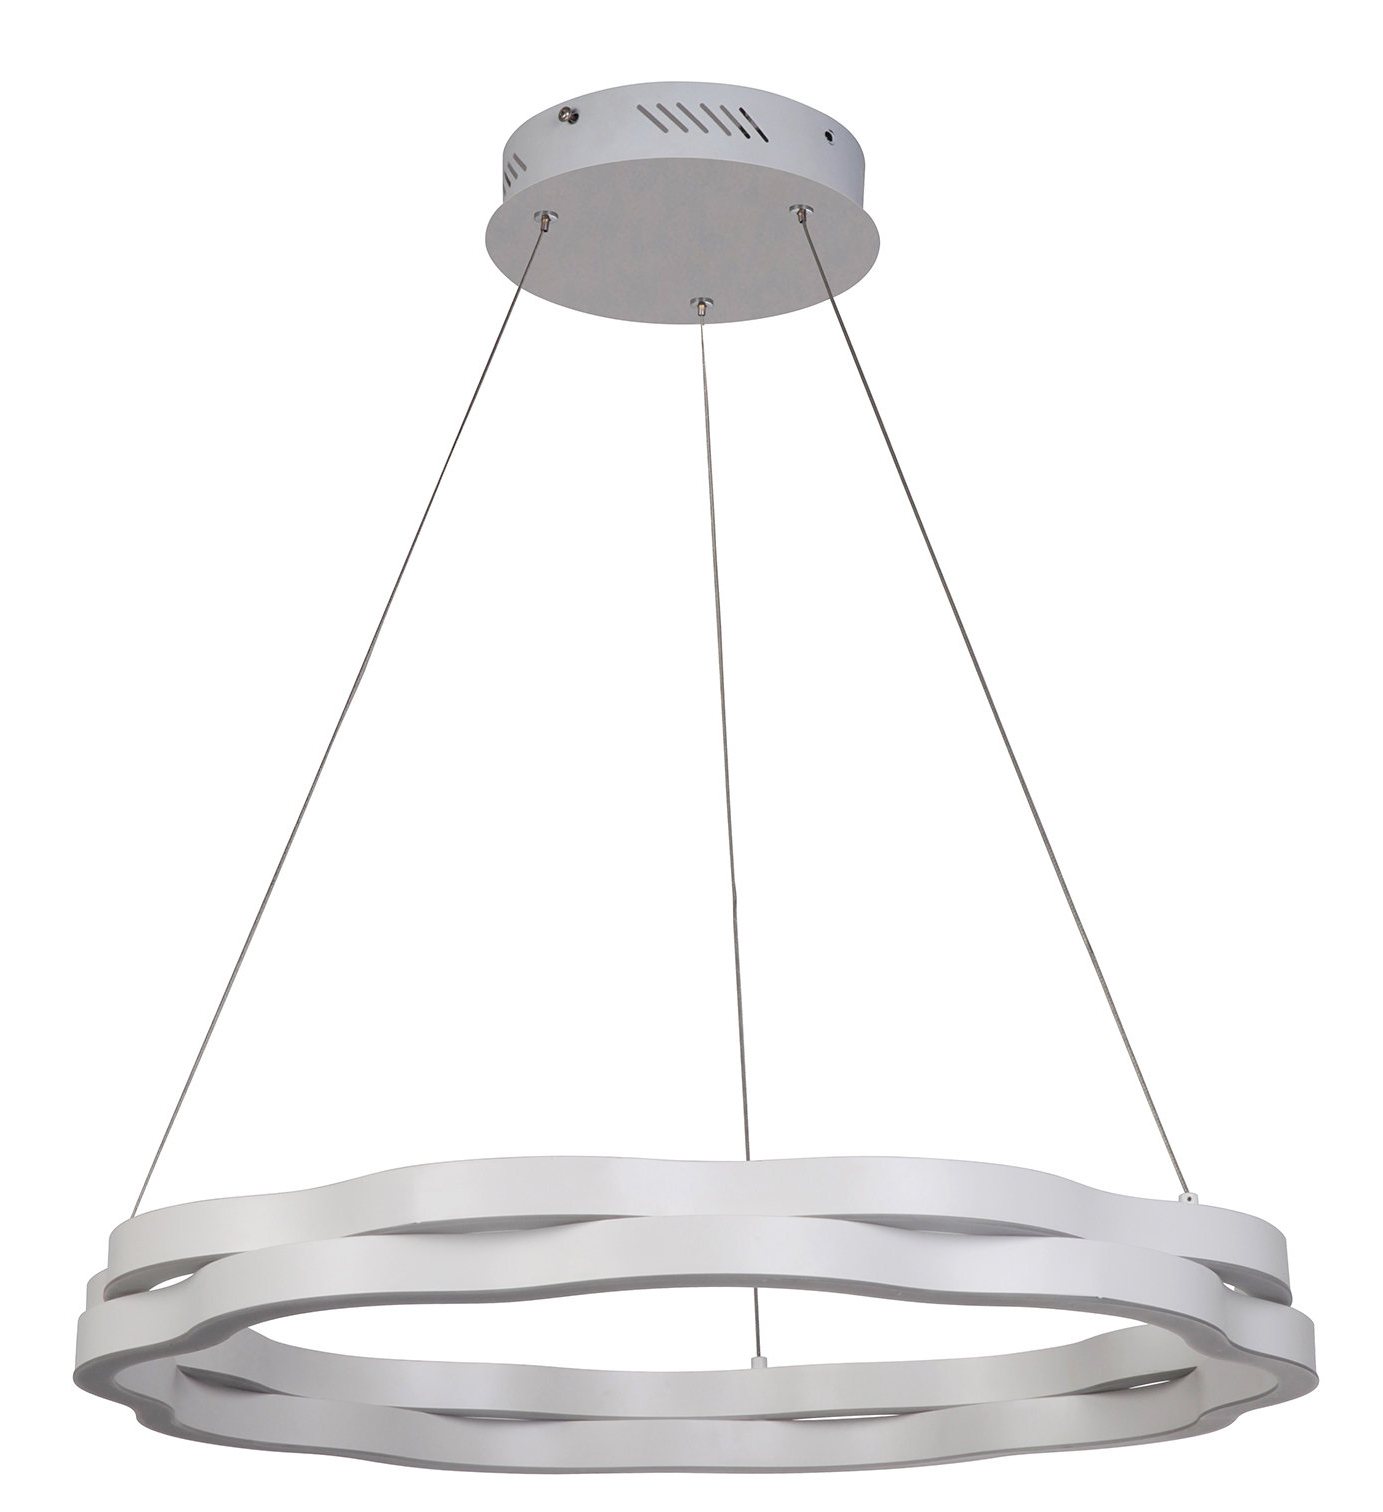 Fashionable Belgica 1 Light Led Geometric Pendant Within Callington 1 Light Led Single Geometric Pendants (View 10 of 20)